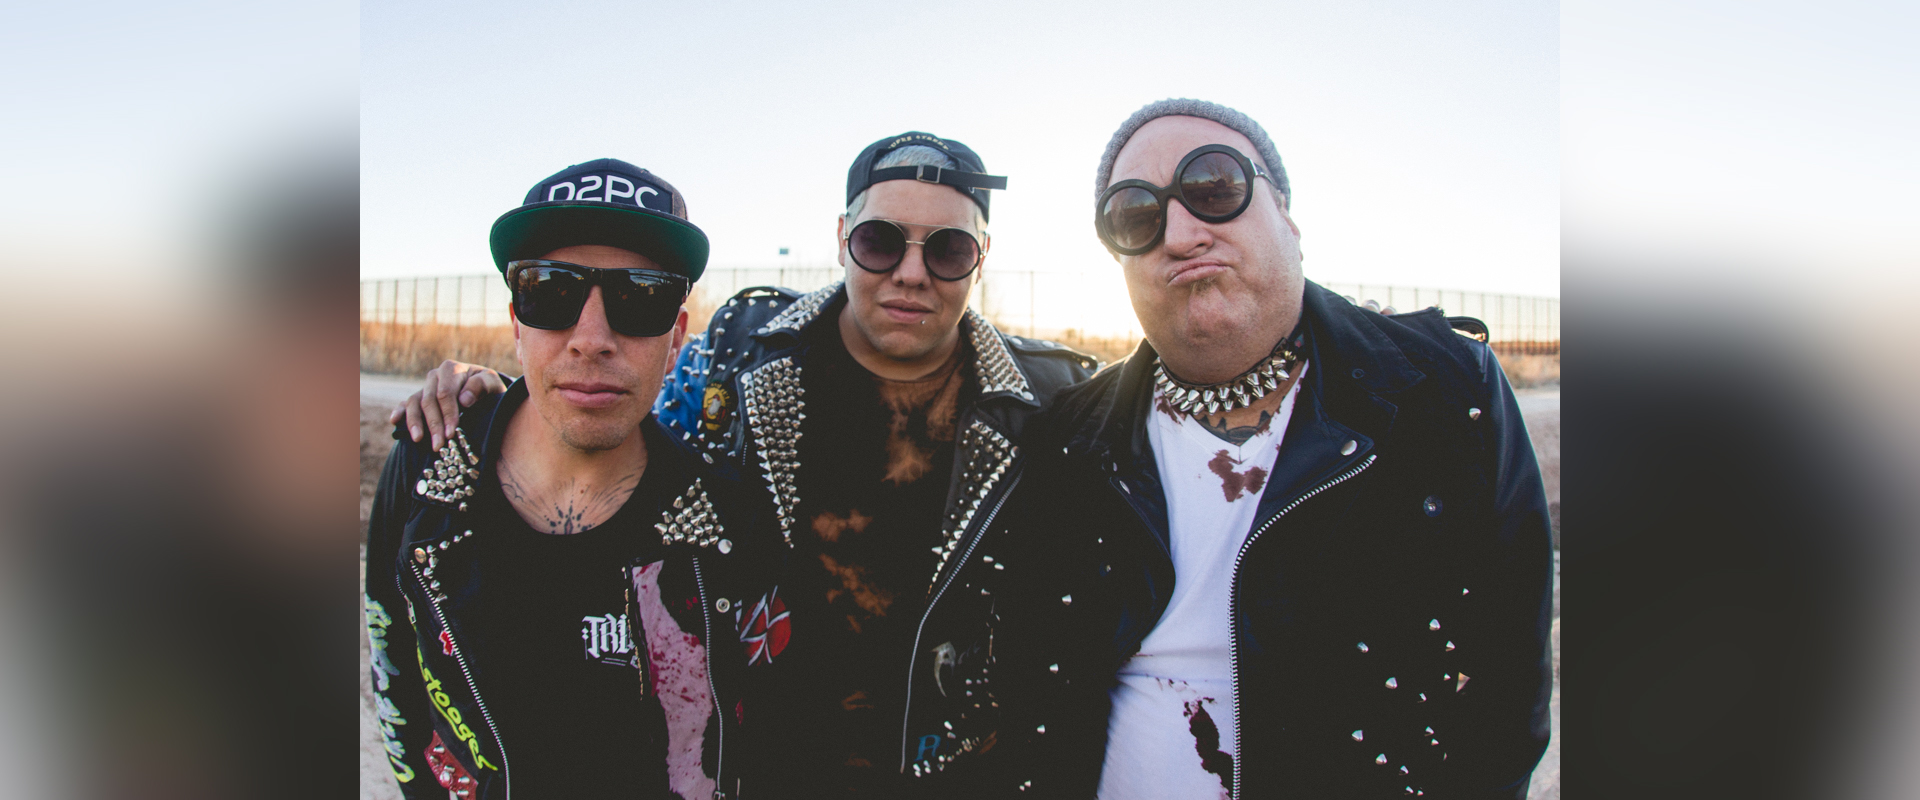 Sublime with Rome will headline Sunday at BttB Festival. Photo courtesy of Back to the Beach Festival.